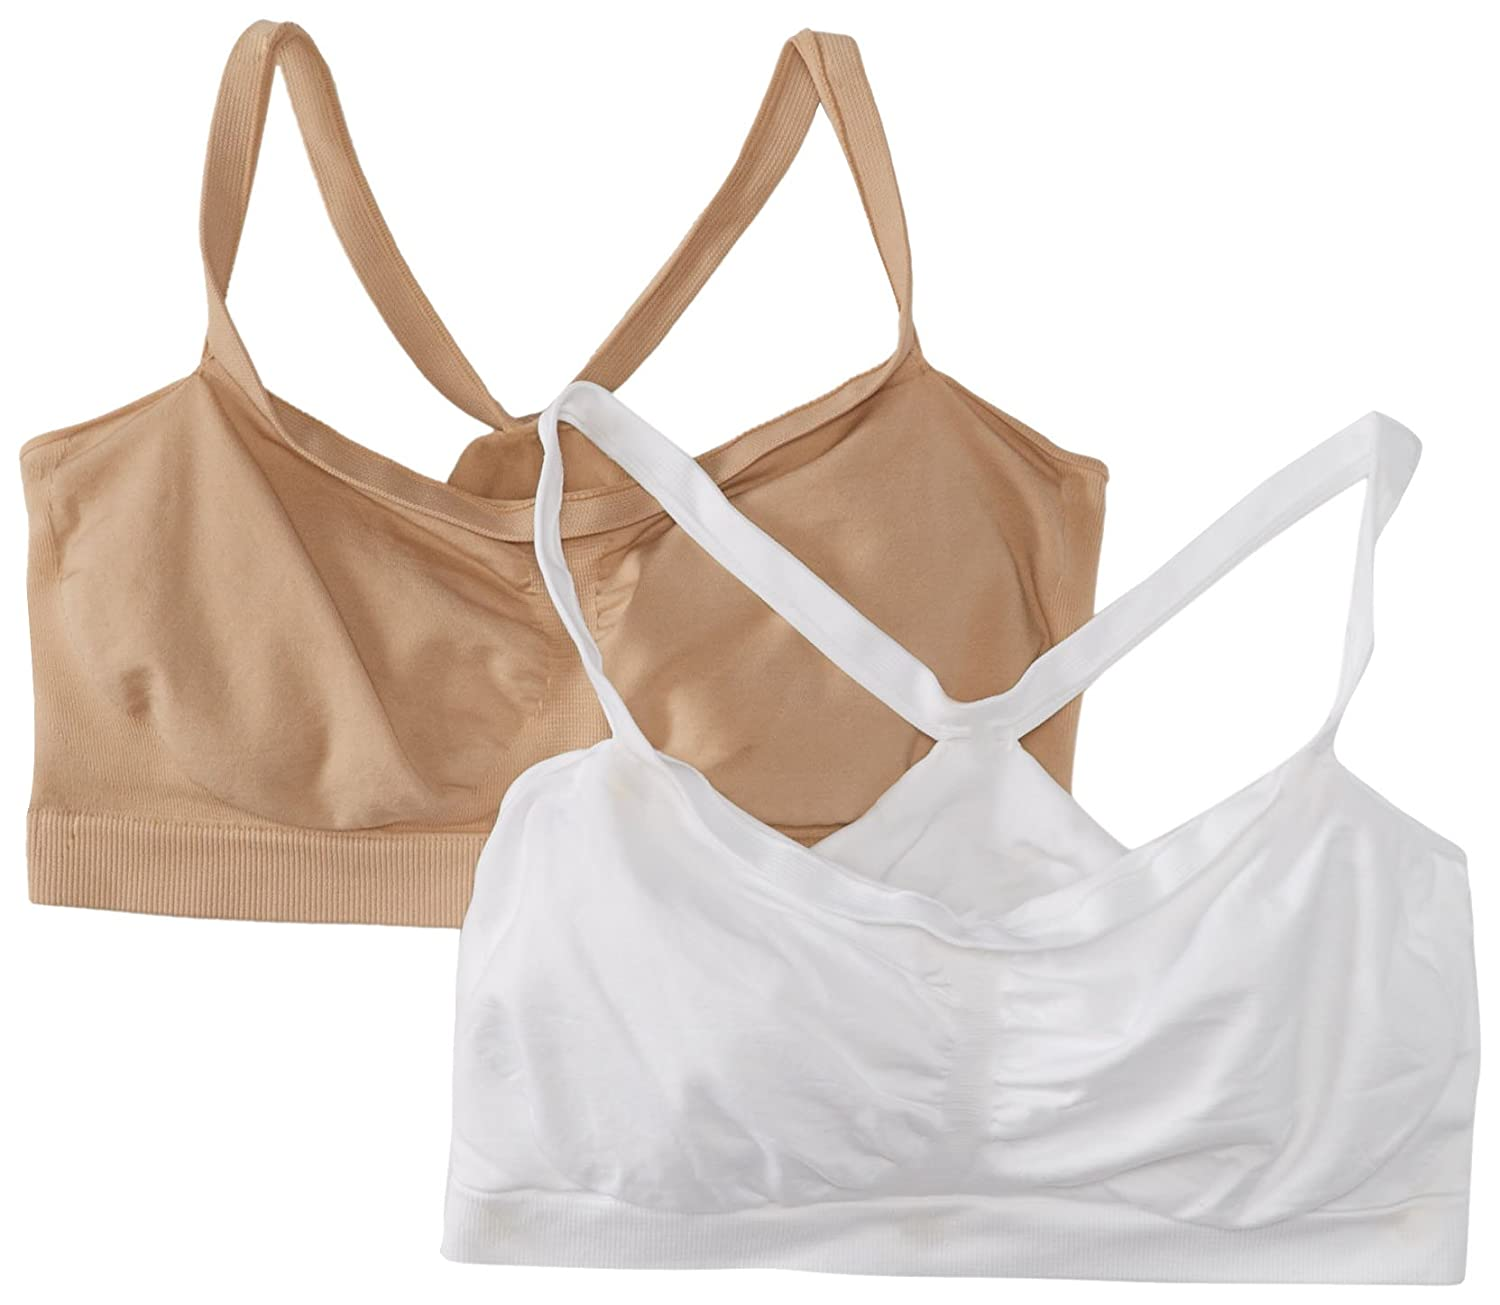 Hanes Women's The Bandini Wire Free Bra (Pack of 2) Hanes Bras M299